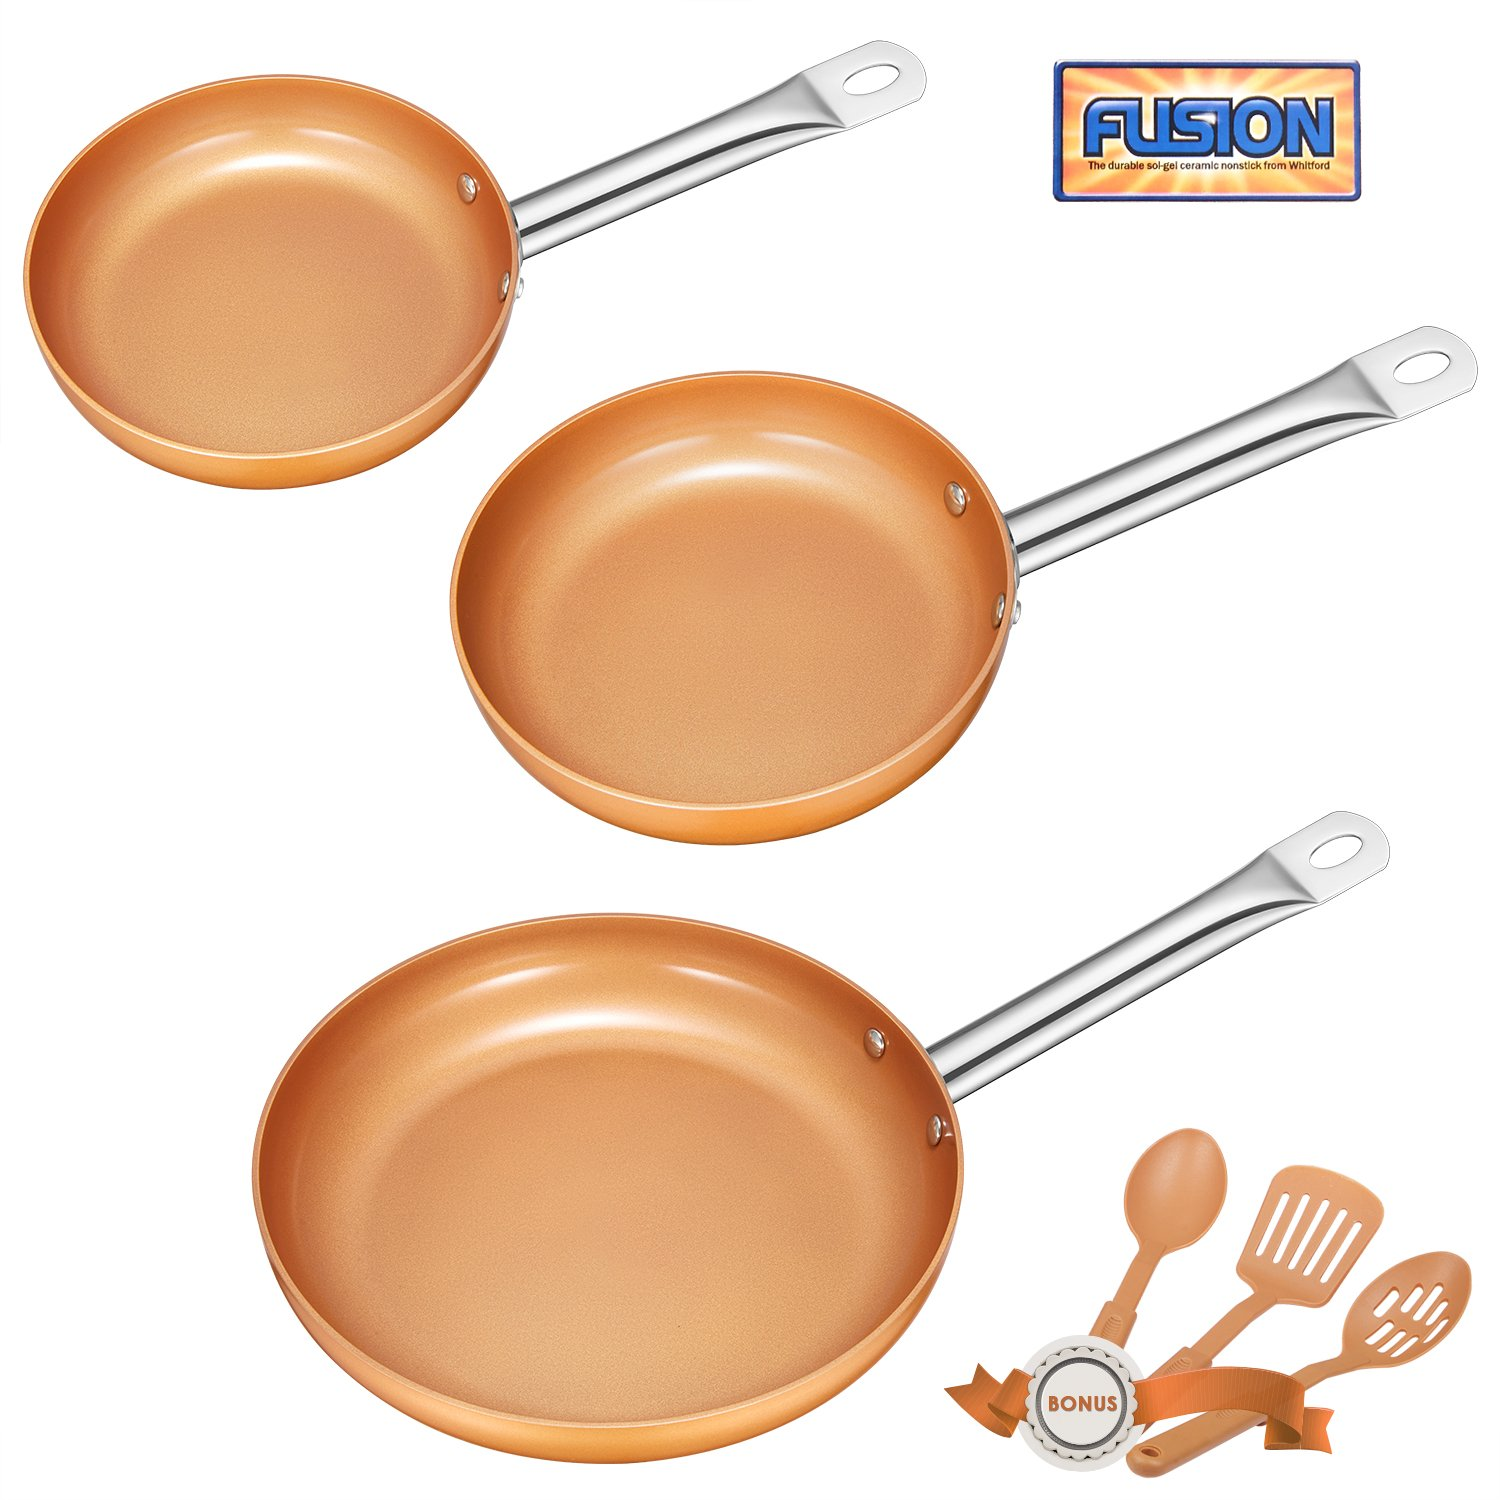 Deik Frying Pan Set, Non-Stick Ceramic Coated Copper Set 8'', 10'' and 12'' Induction Compatible, Oven & Dishwasher Safe, Stainless Steel Handles, with 3 Spatula and Spoon by Deik